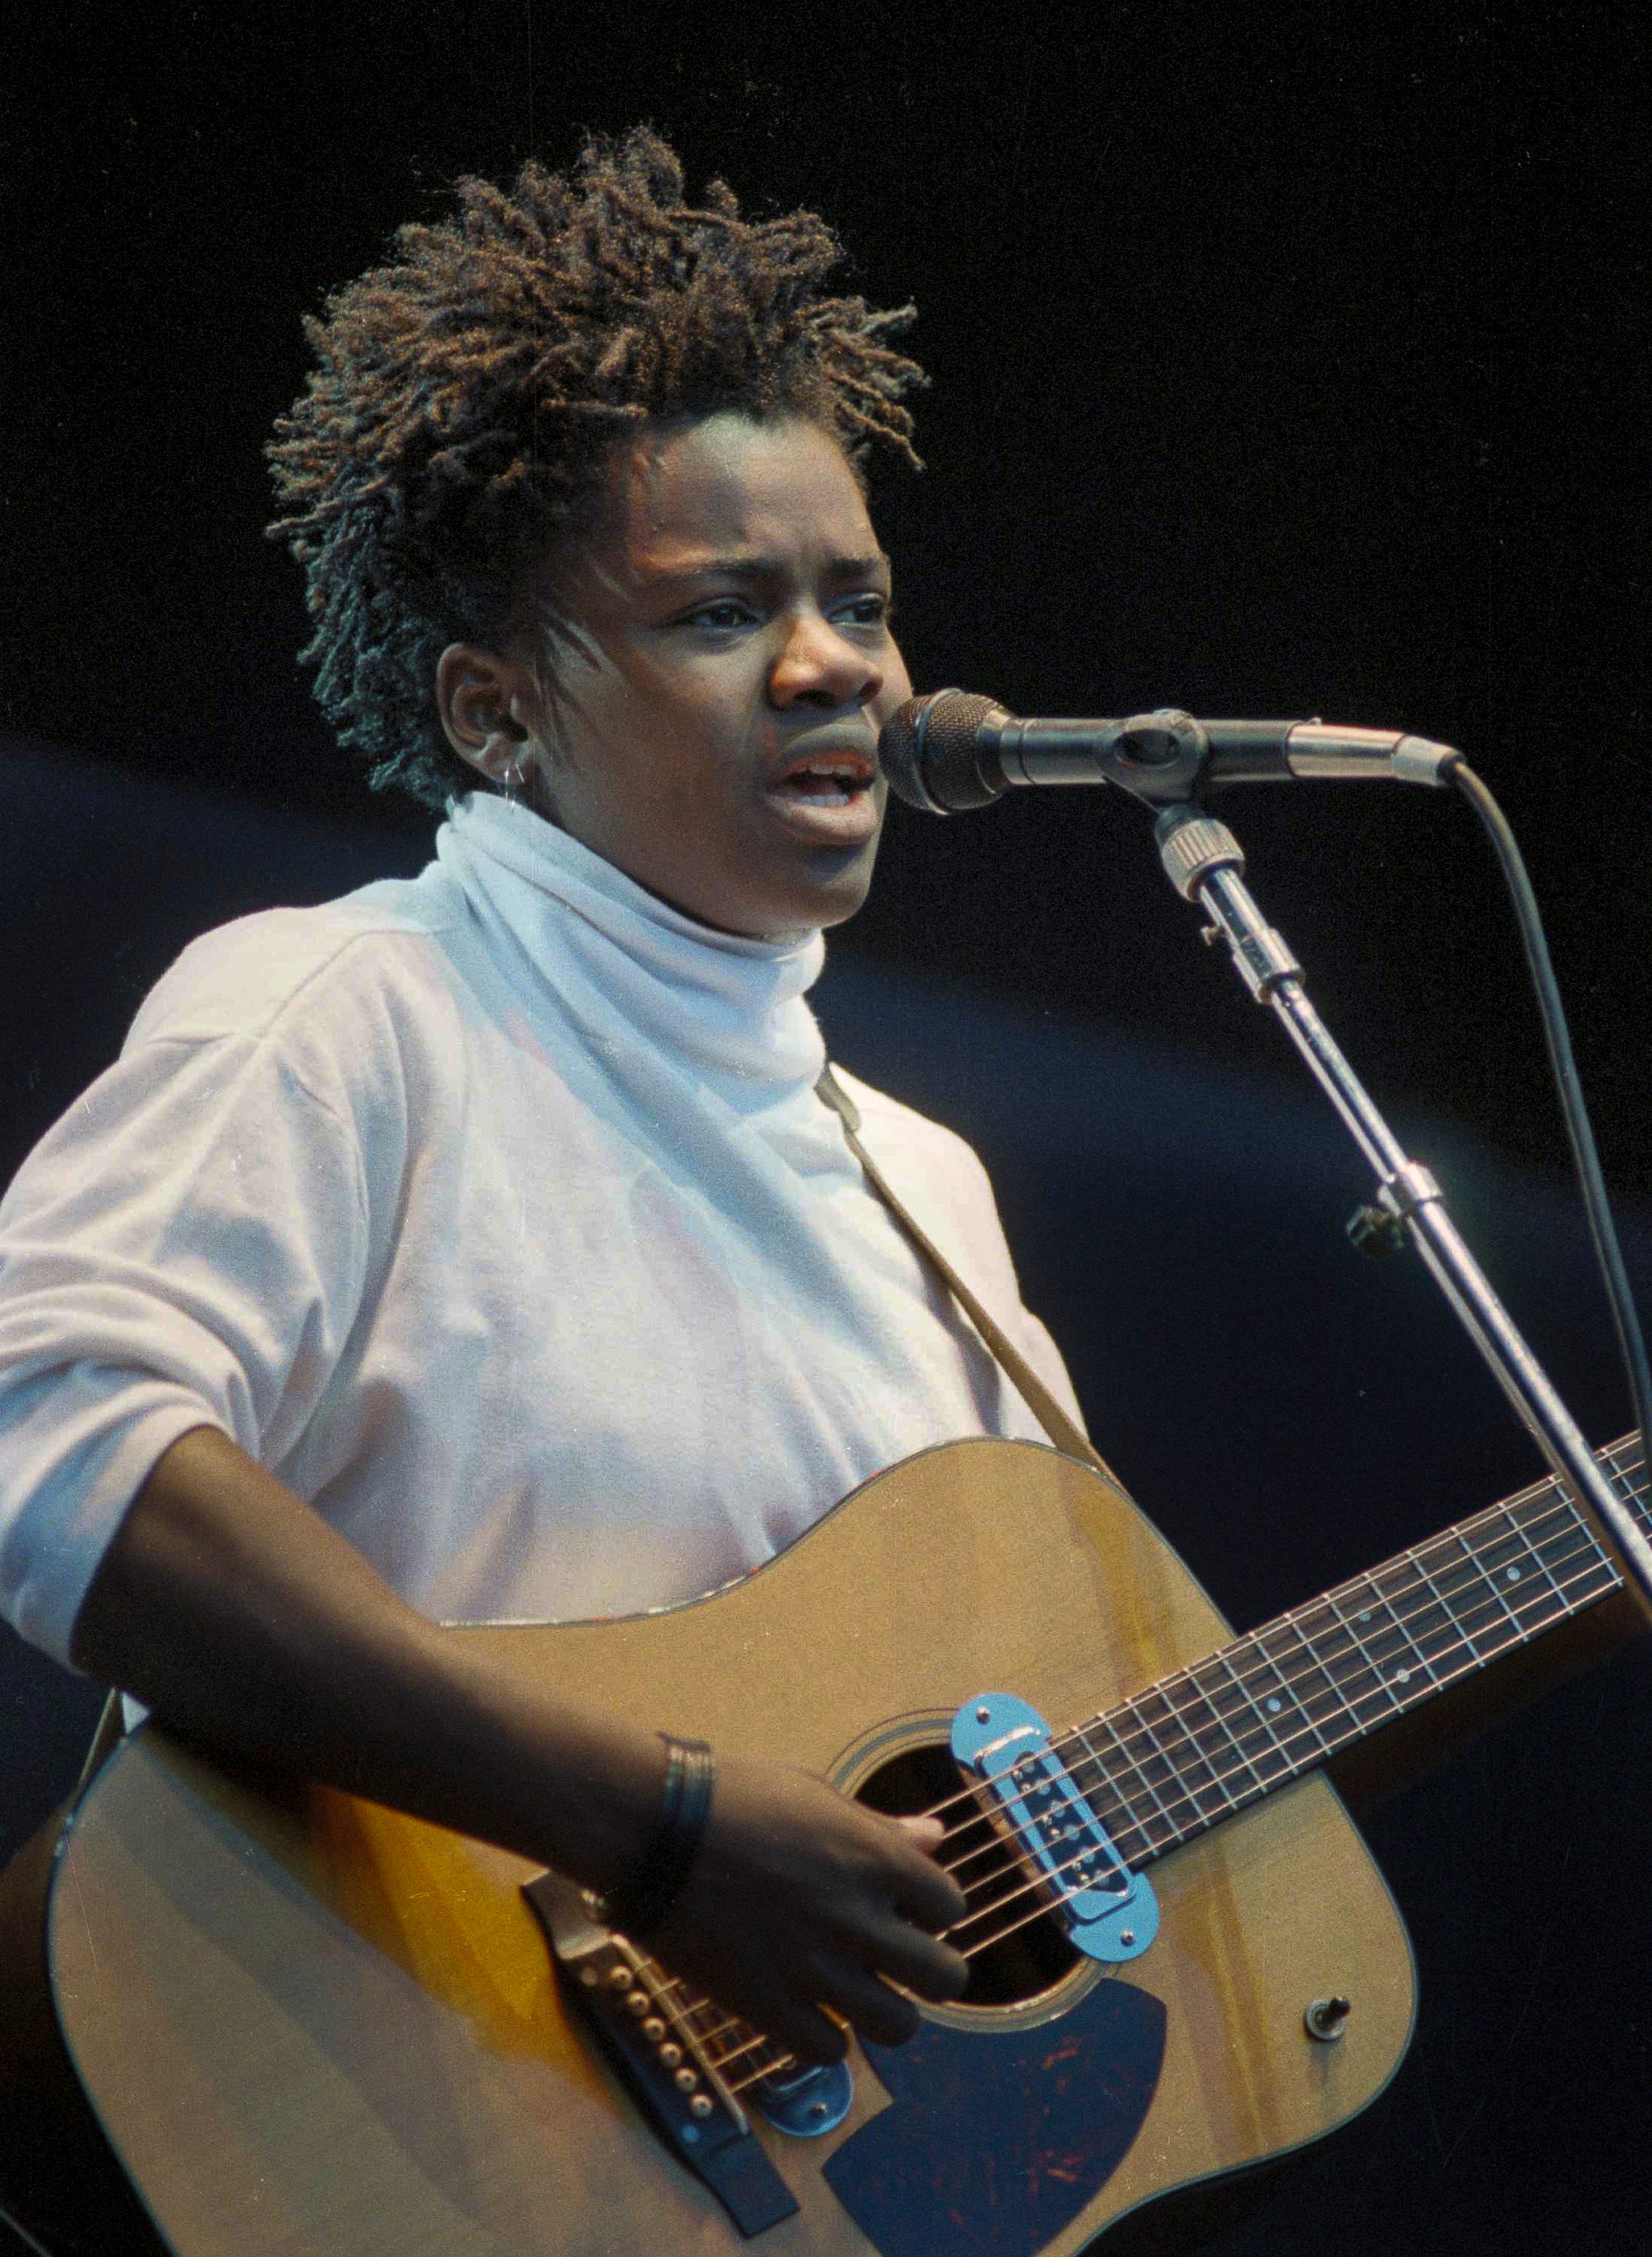 Folk singer Tracy Chapman sings at Wembley Stadium, London, at the opening of a global rock tour for human rights by Amnesty International, Sept. 2, 1988.